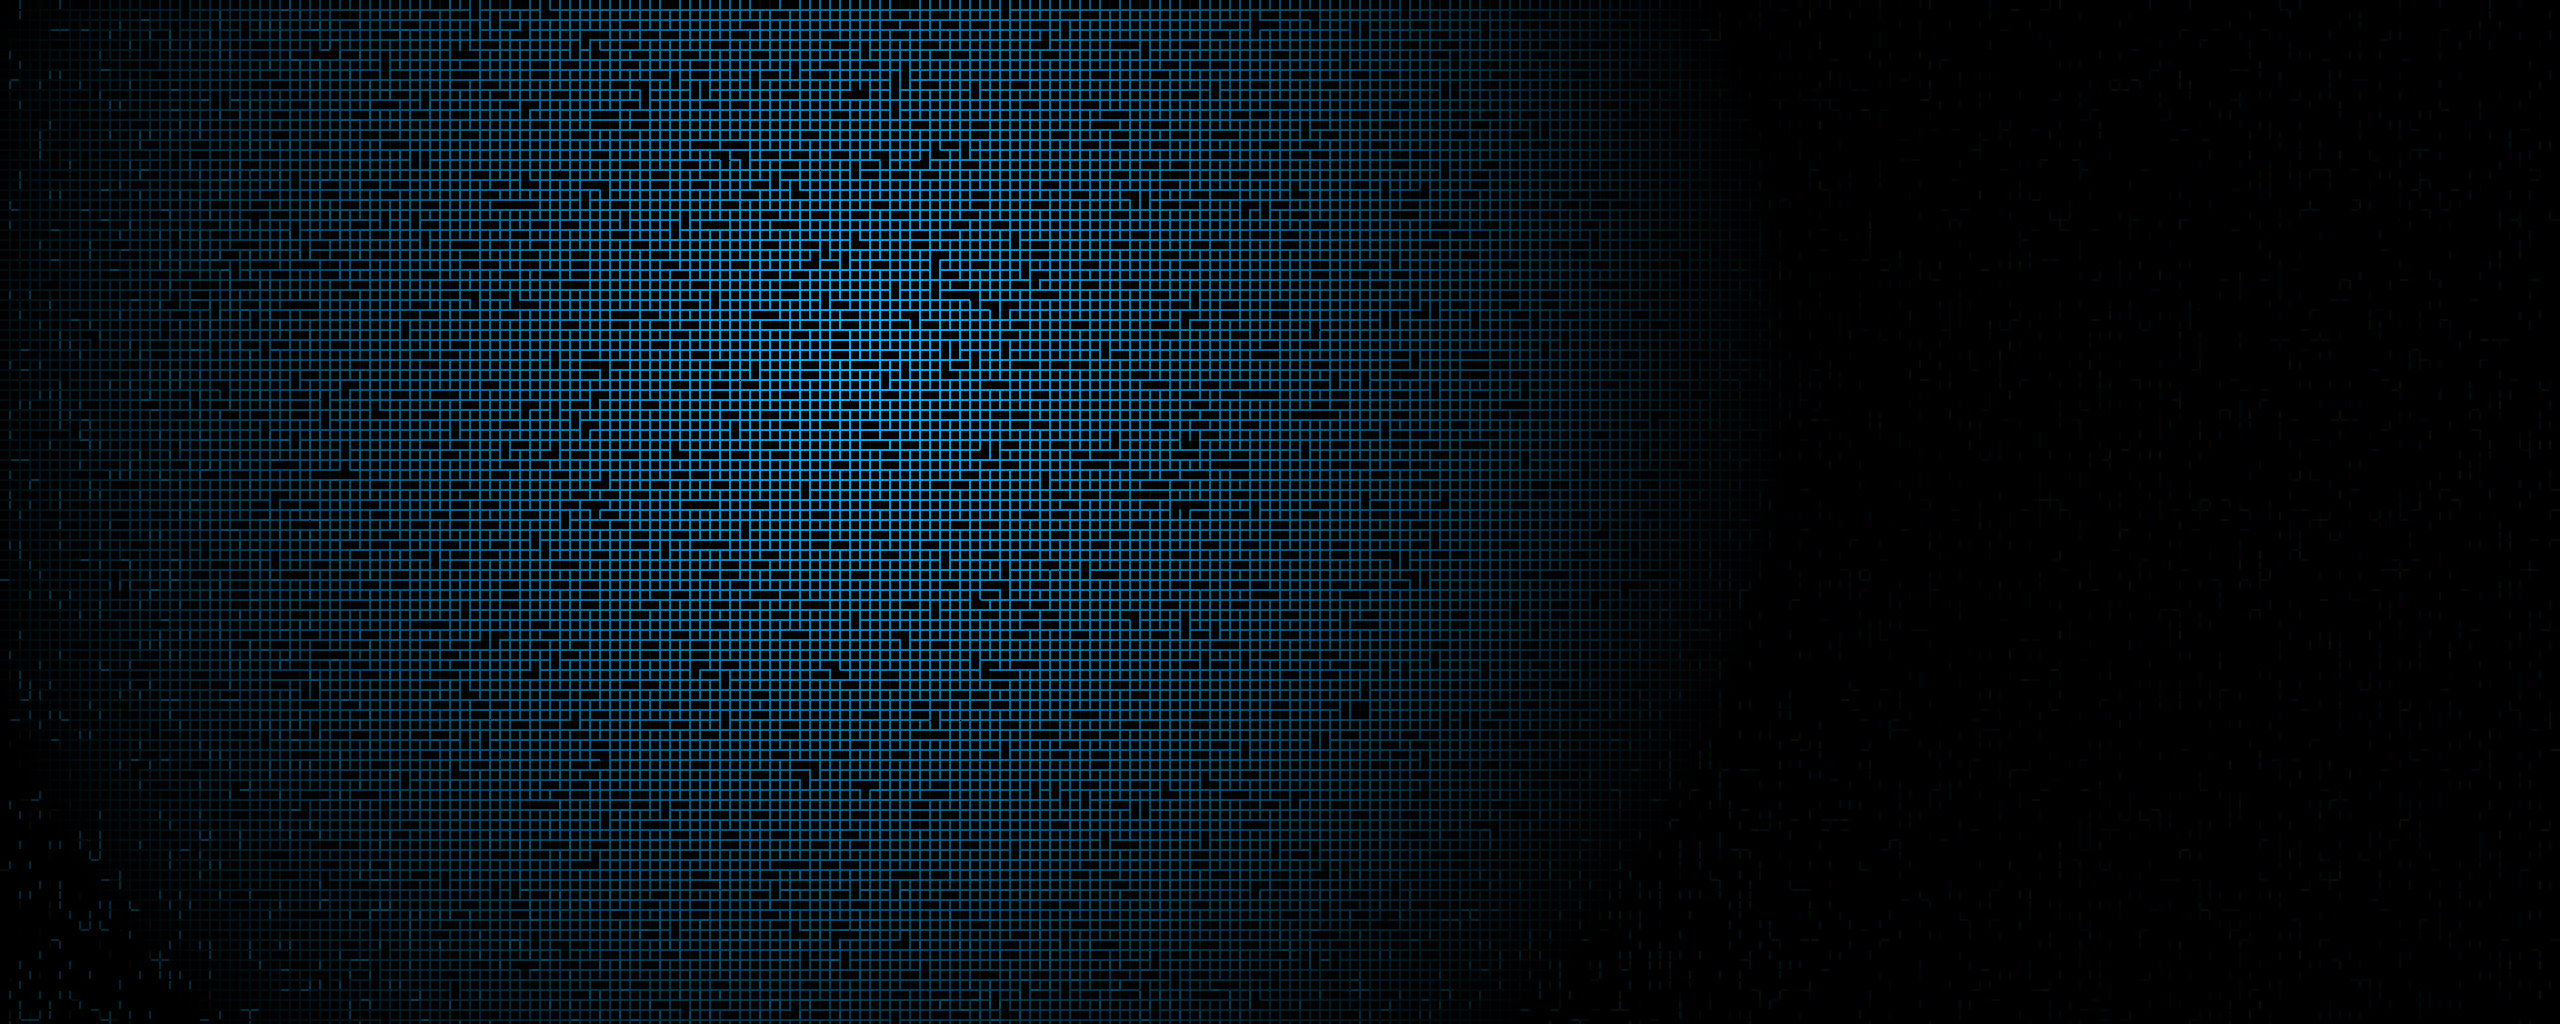 Wallpapers Black And Blue